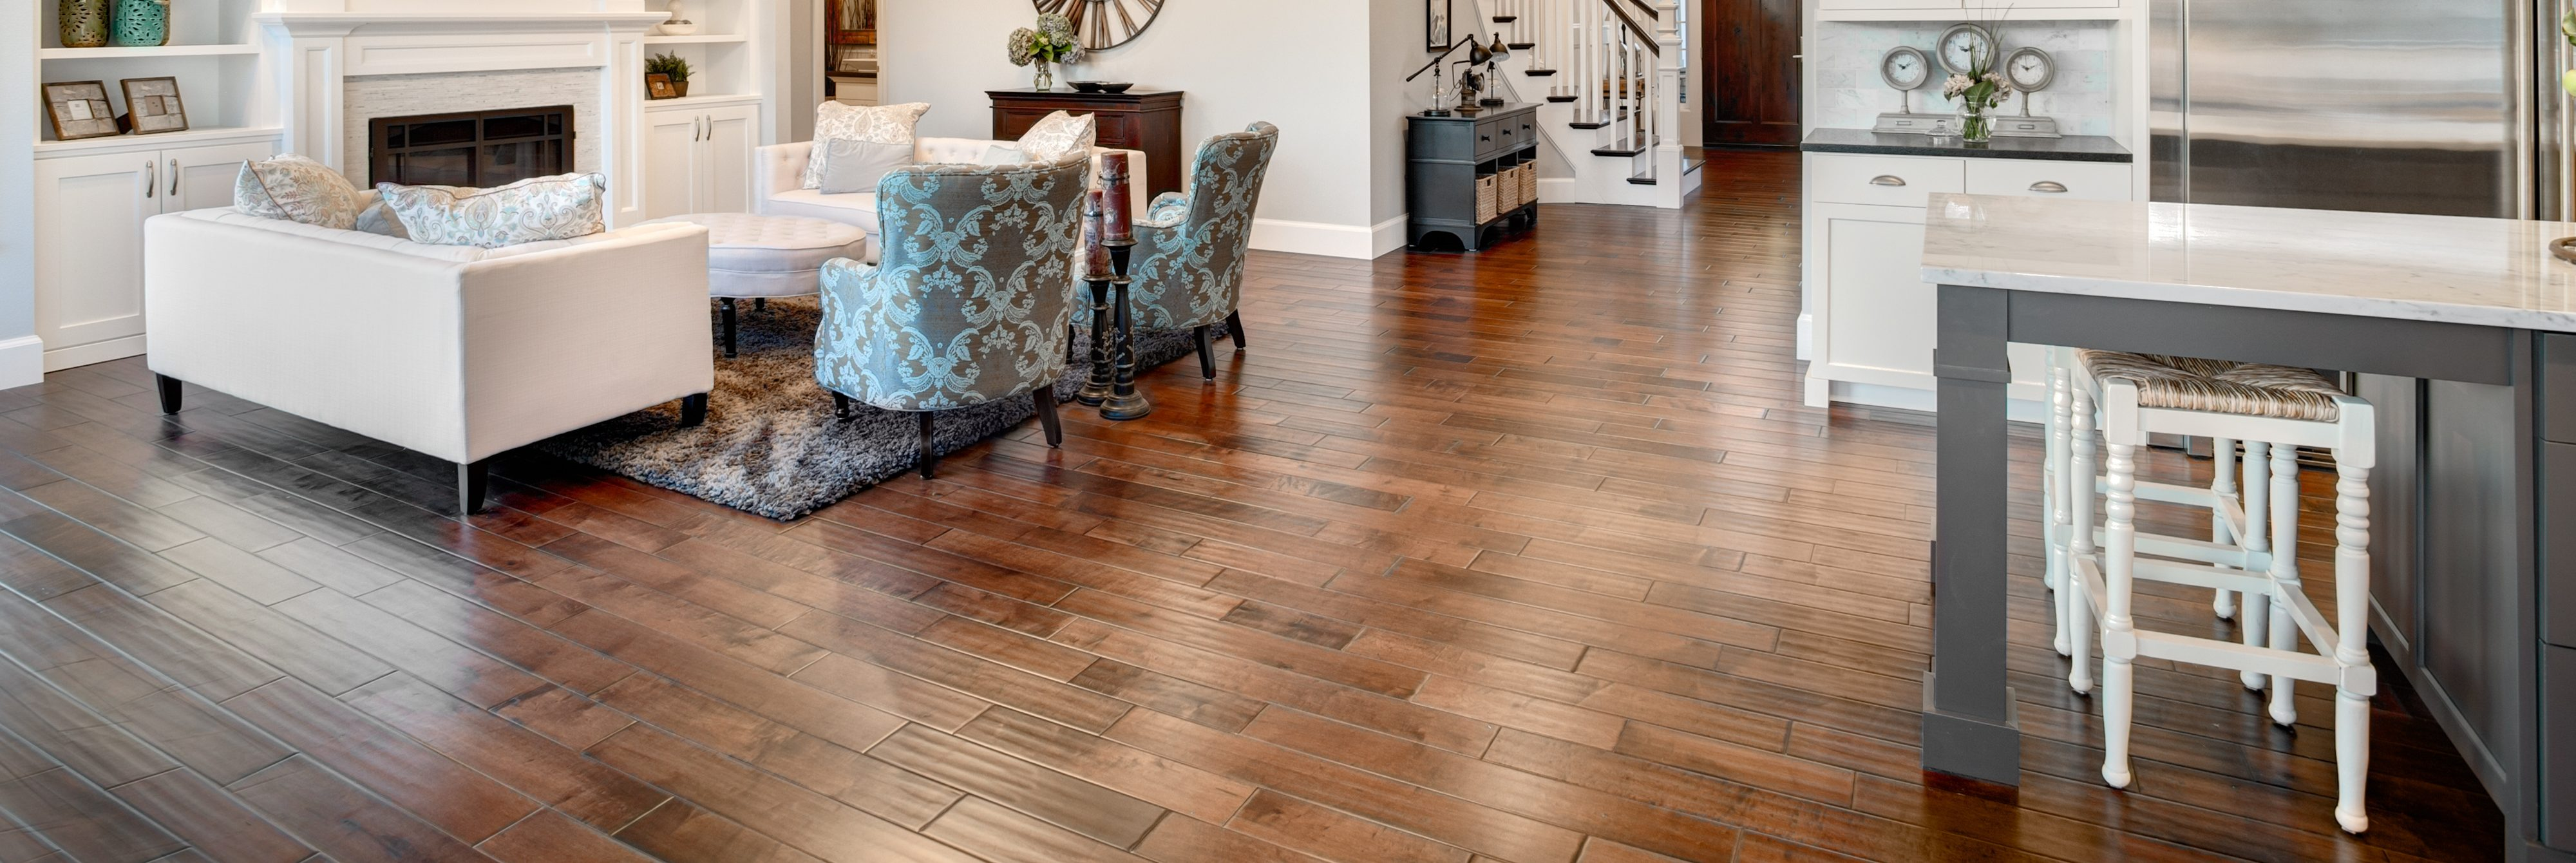 night inc services oregon city maintenance years floor professional or over owl flooring for